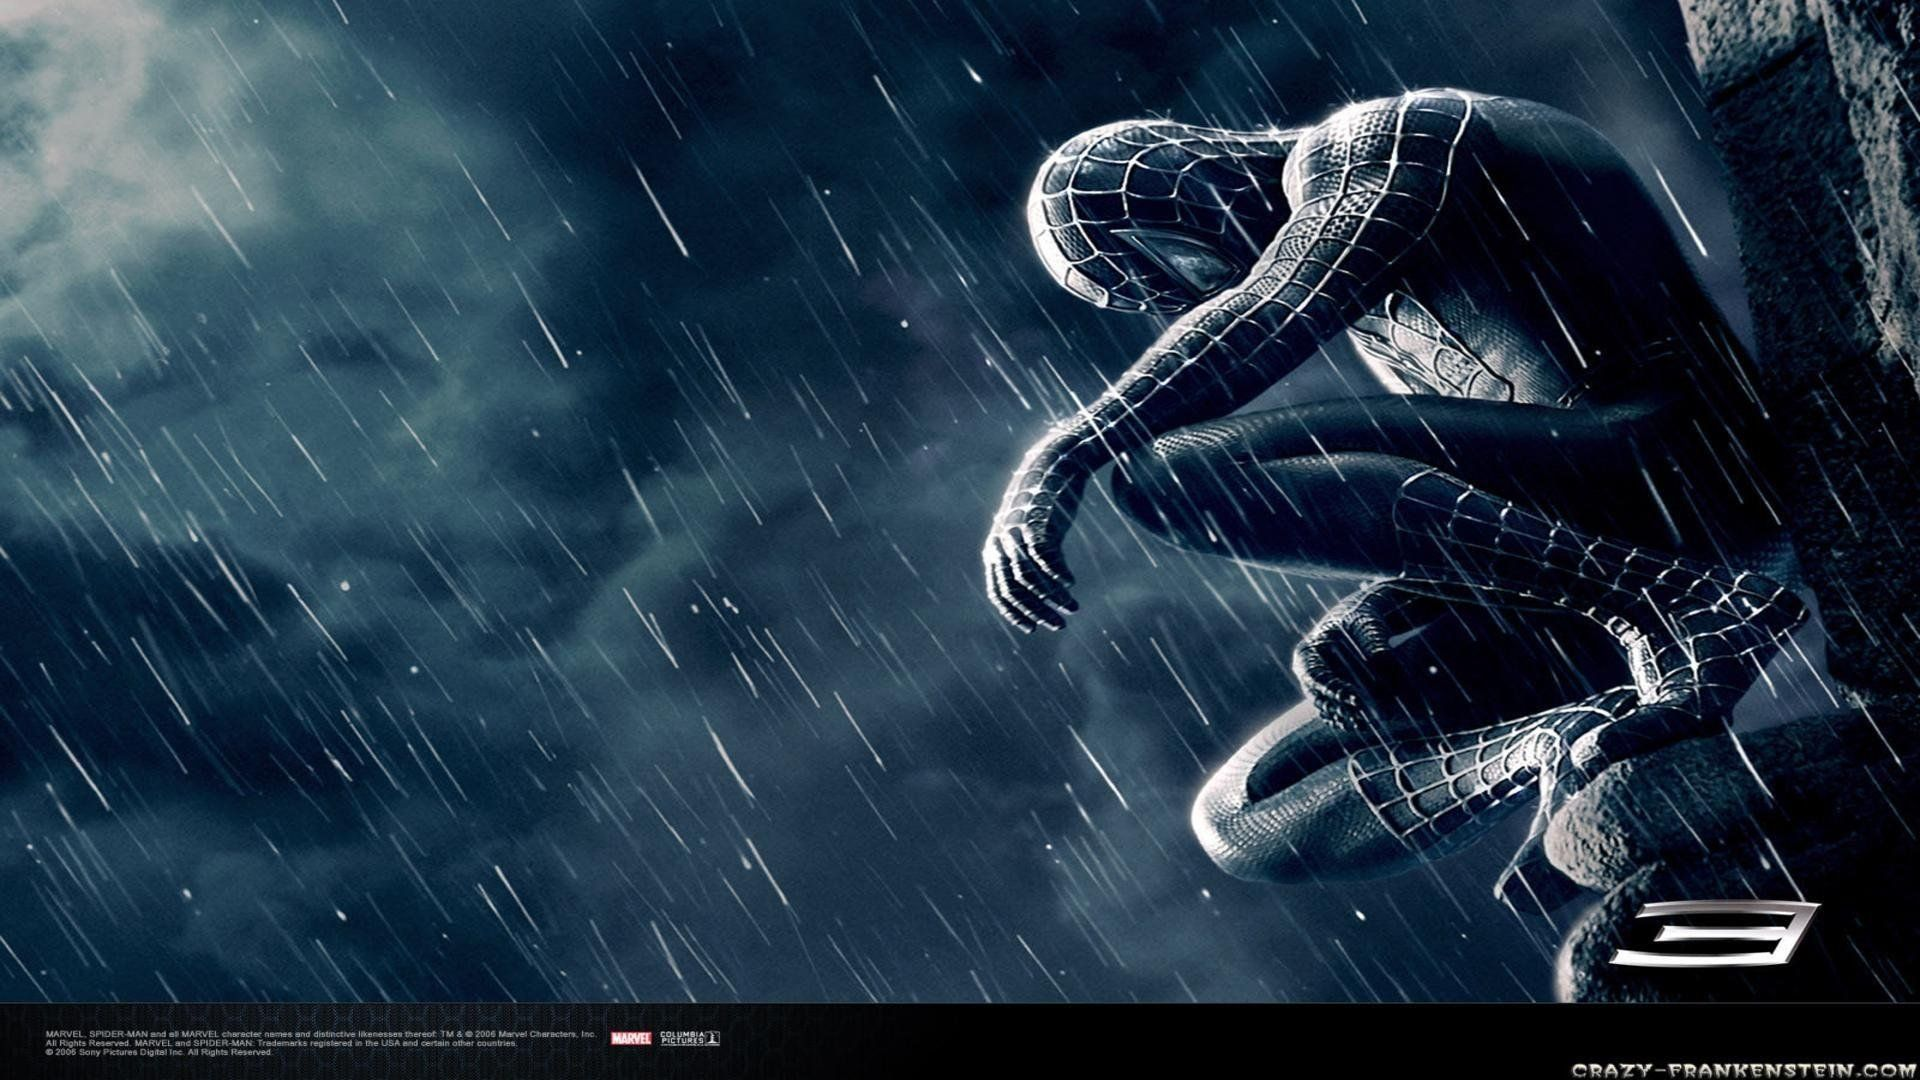 Spider Man 3 Wallpapers Top Free Spider Man 3 Backgrounds